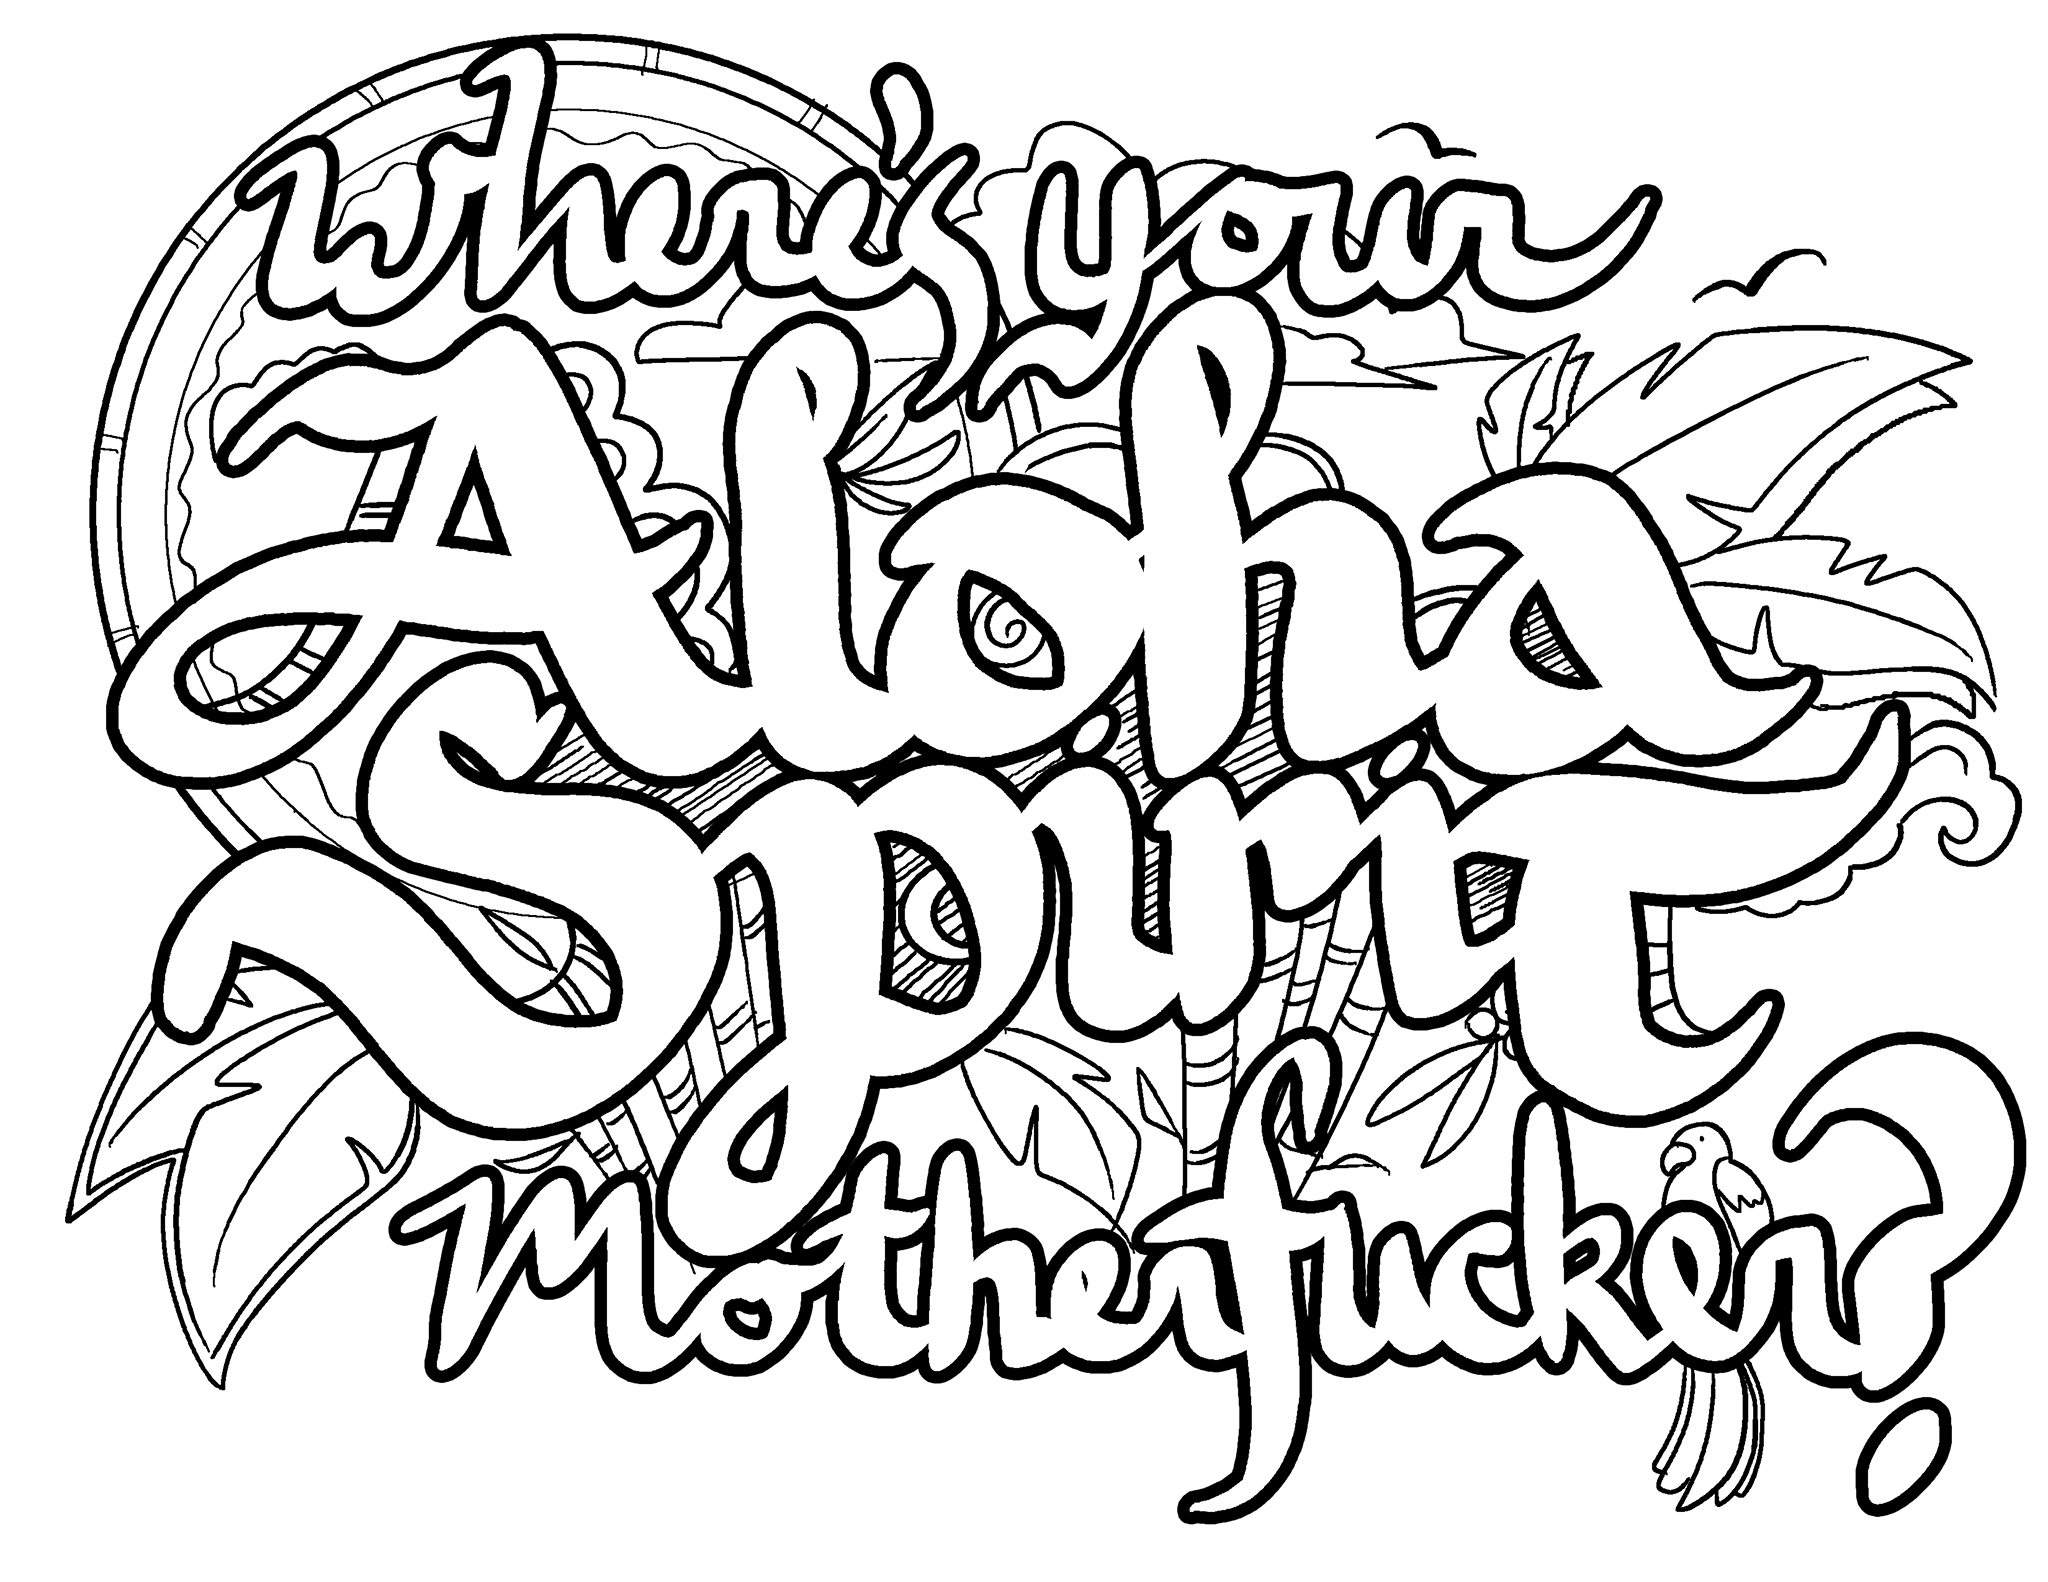 Wheres Your Aloha Spirit Motherfucker